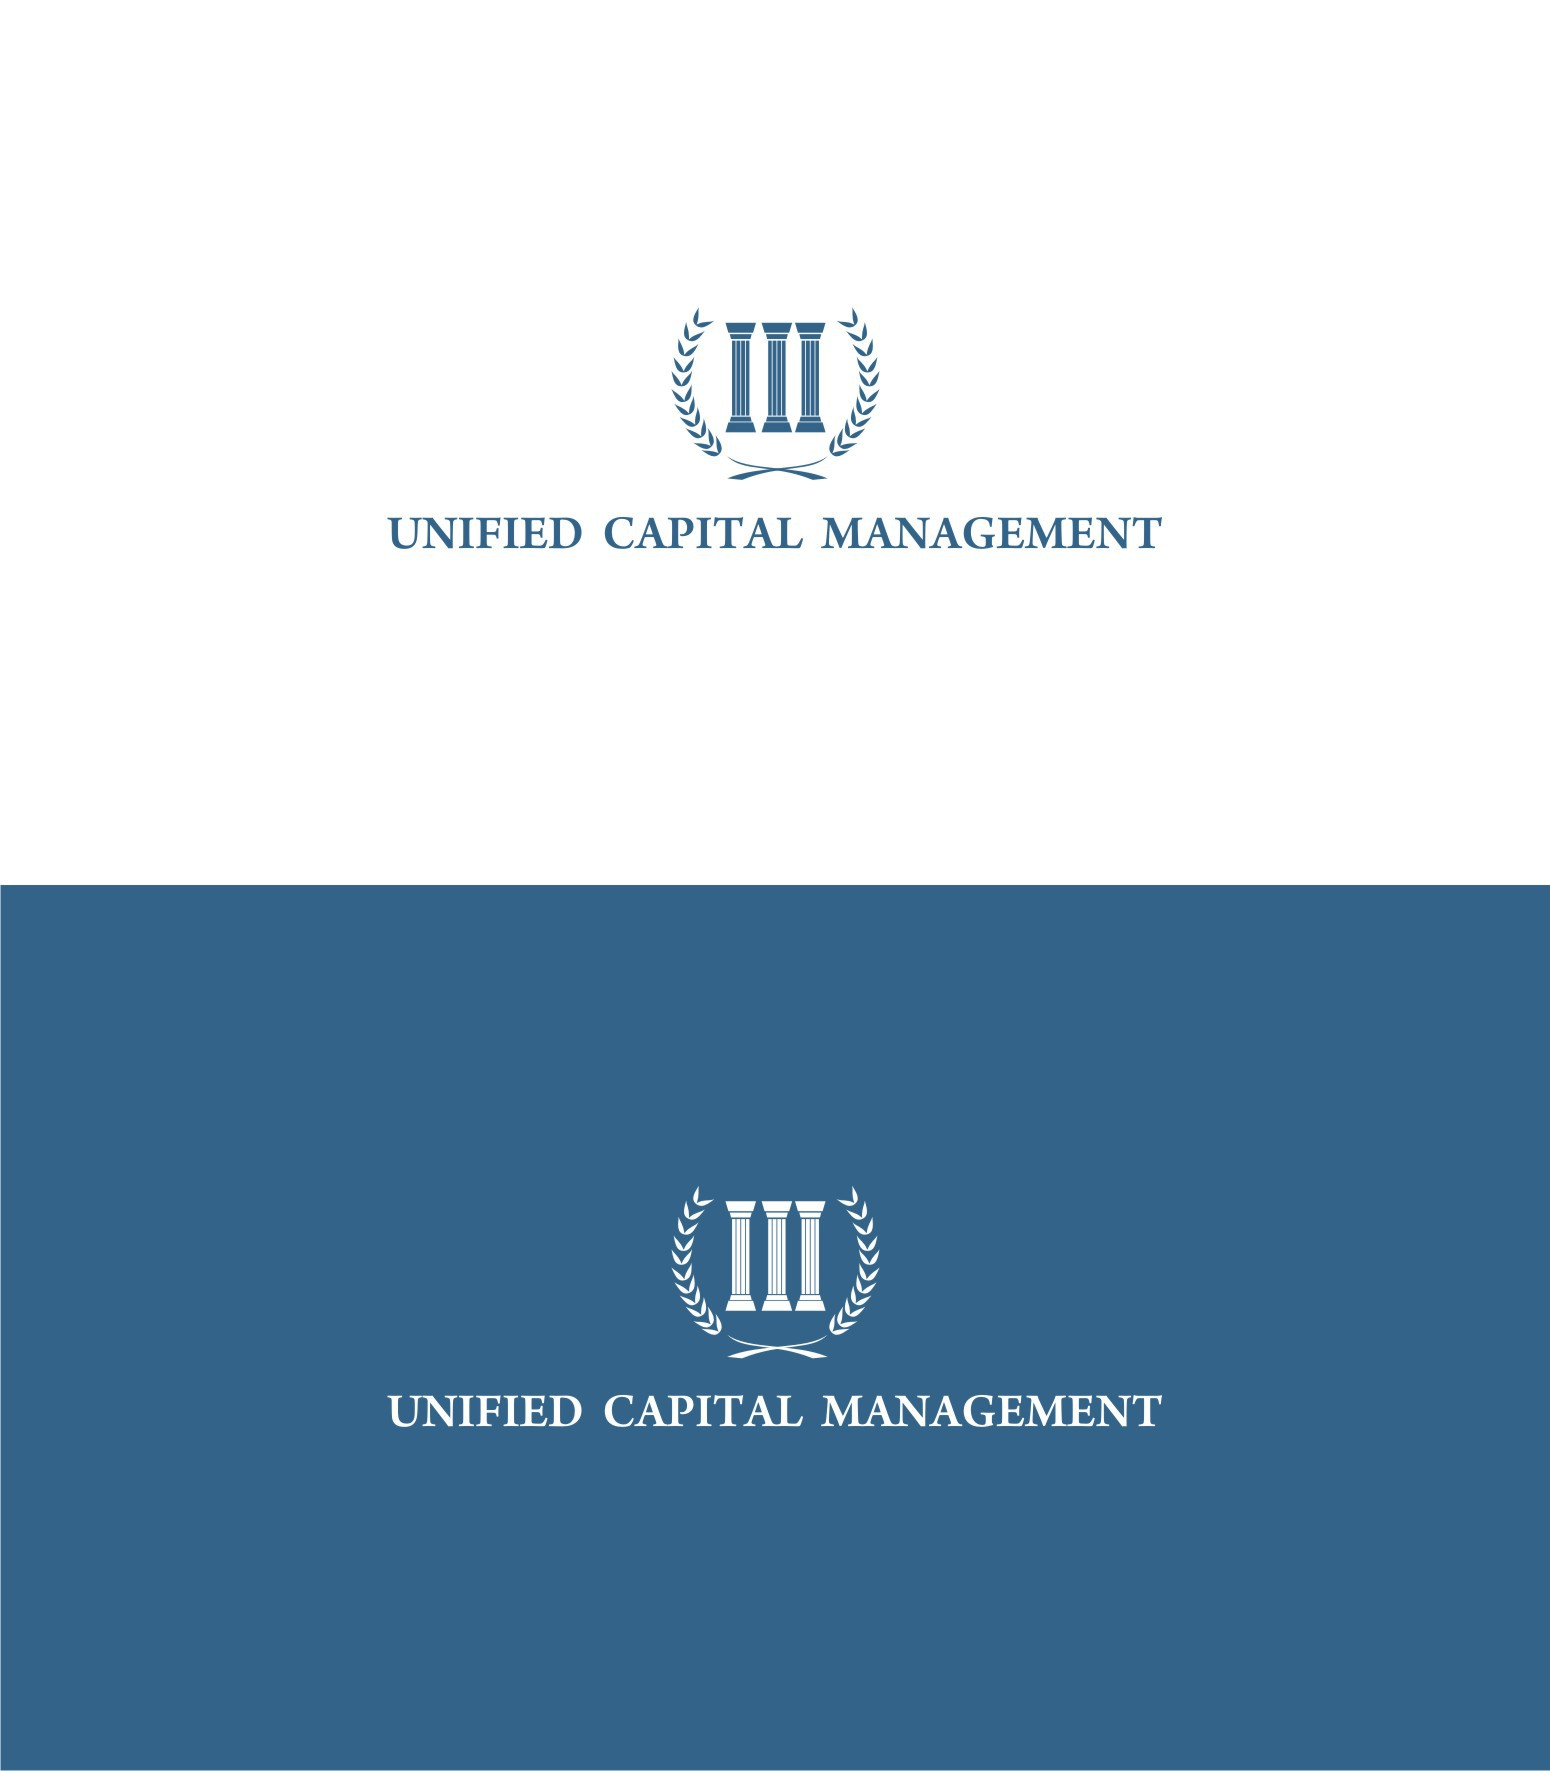 design a classic logo for the next Merrill Lynch wealth management firm, Unified Capital Management